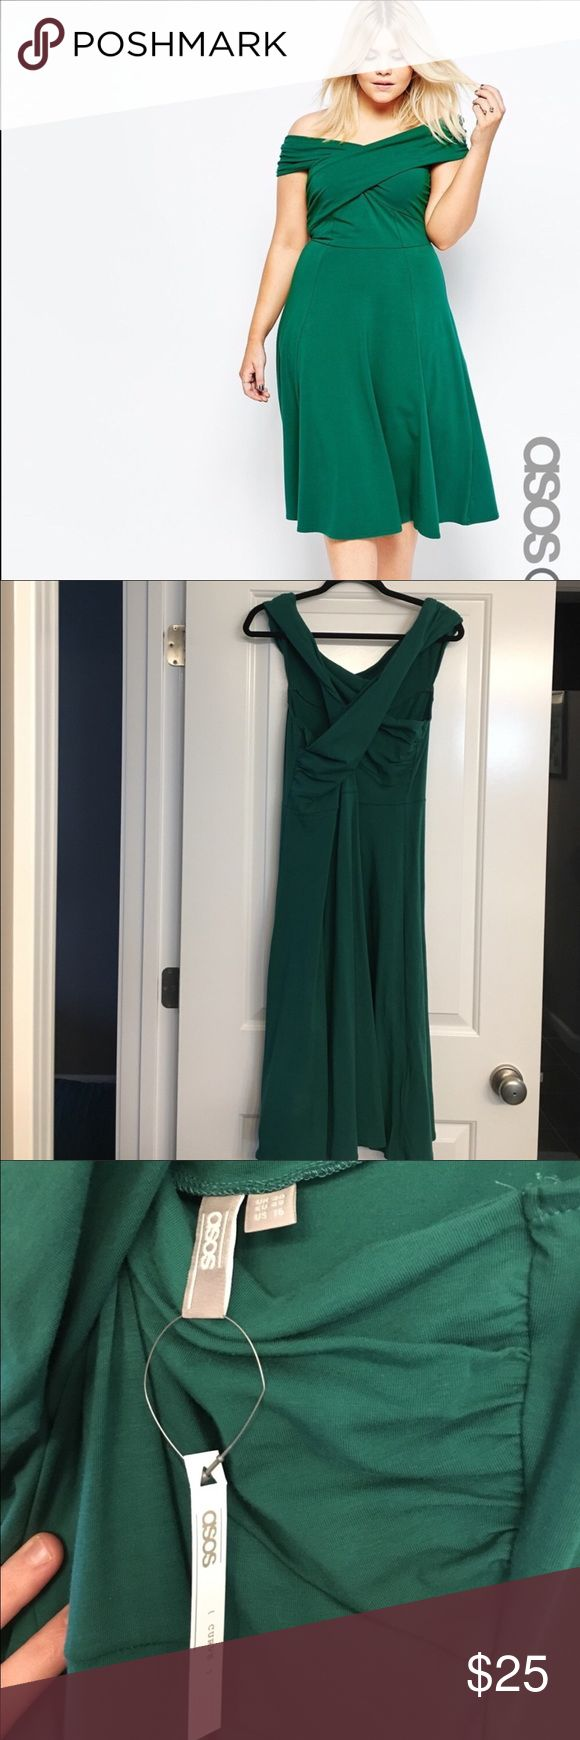 ASOS Emerald Green Dress Re-poshing because it's too big on me. Perfect condition. Just trying to make the money I spent. ASOS Curve Dresses